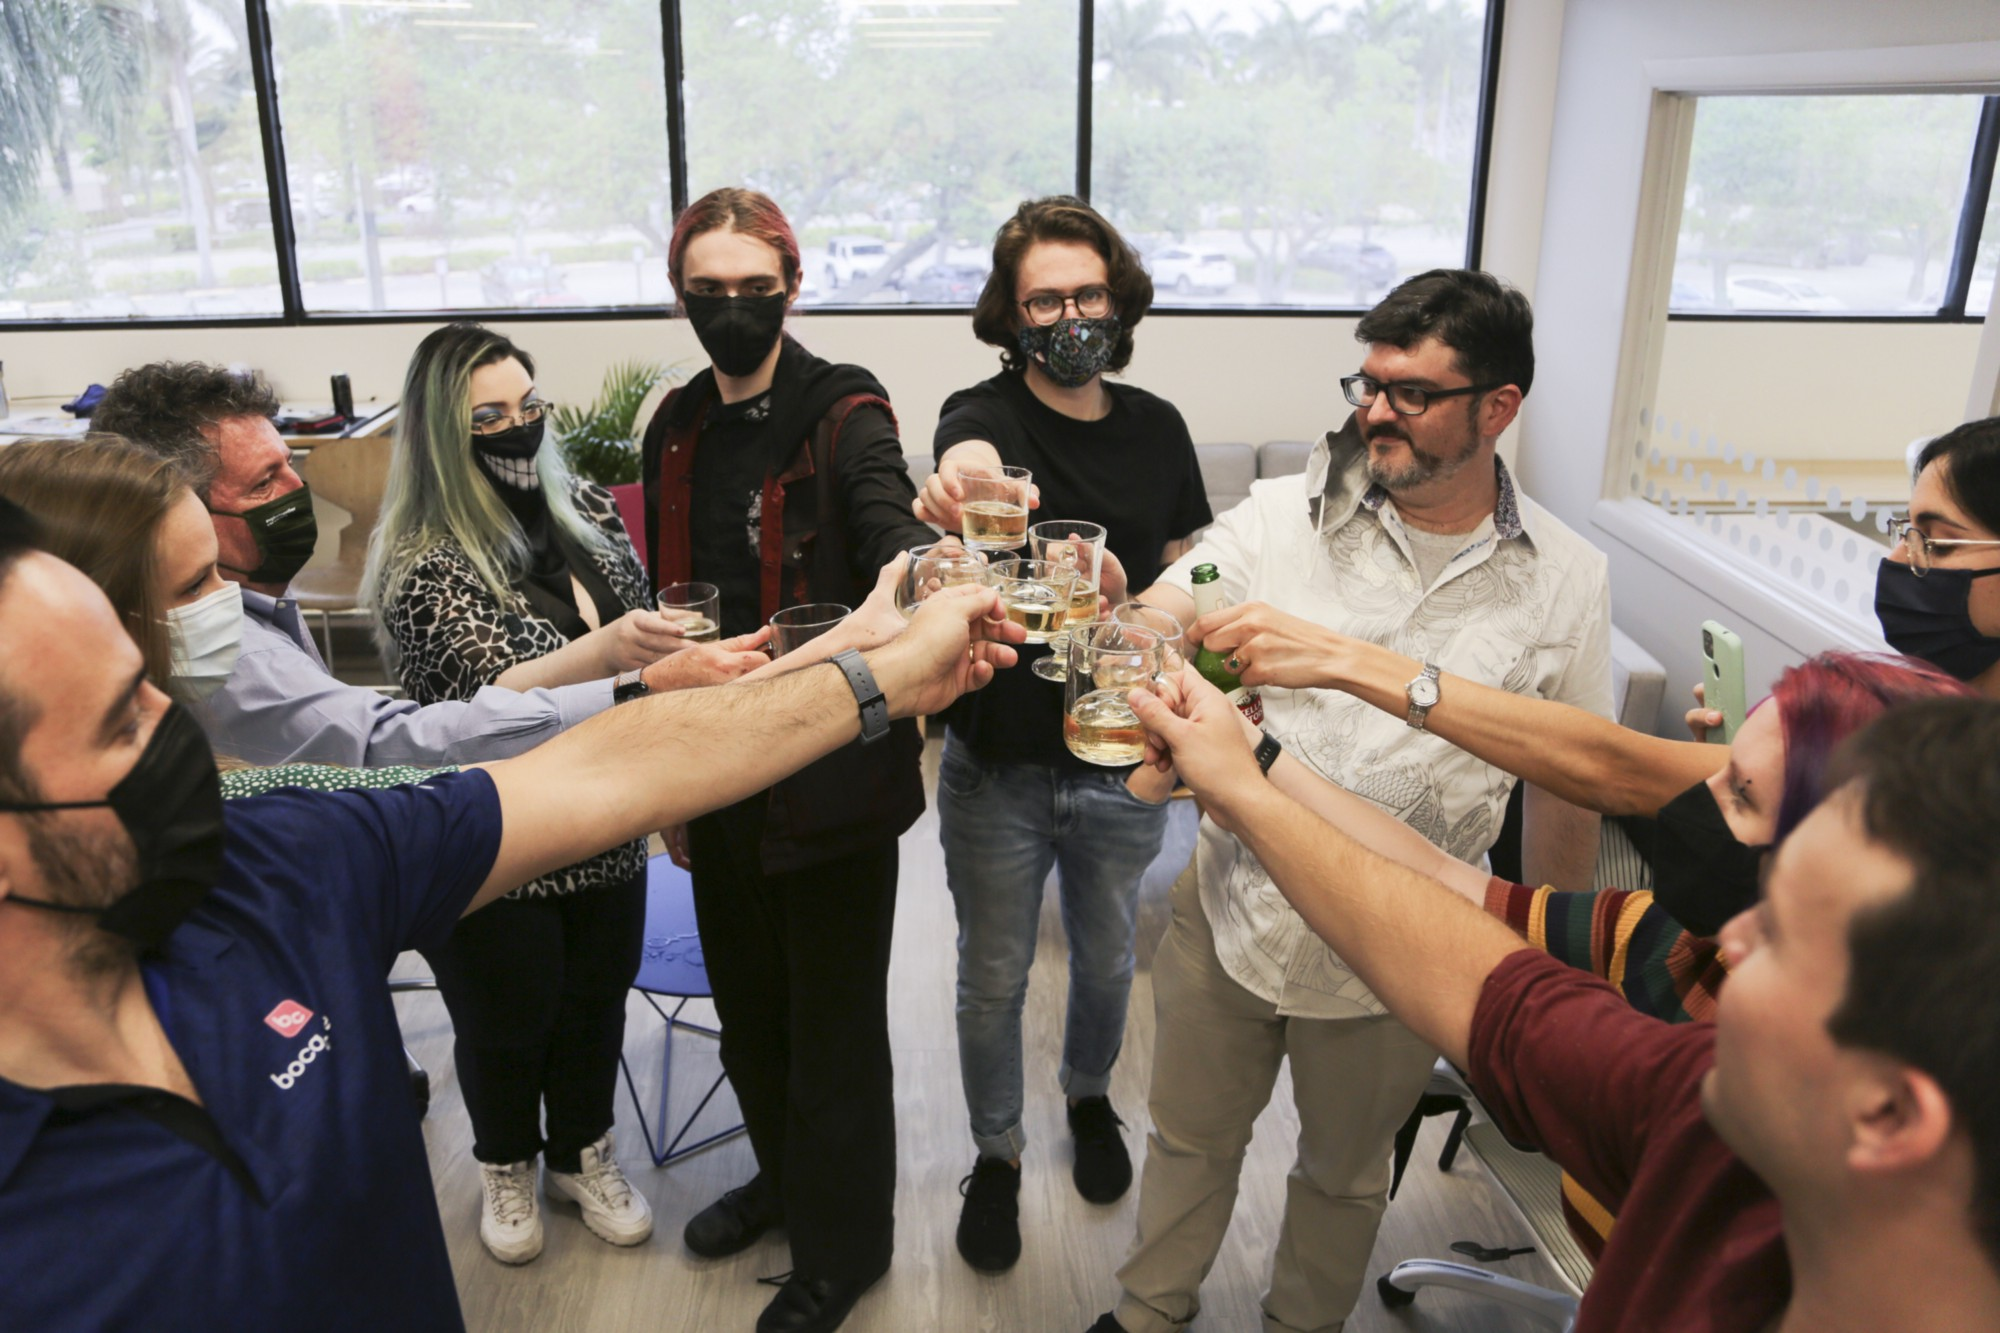 A group of 10 adults, students, instructors, and family, stand in a circle, glasses raised together, toasting to success.